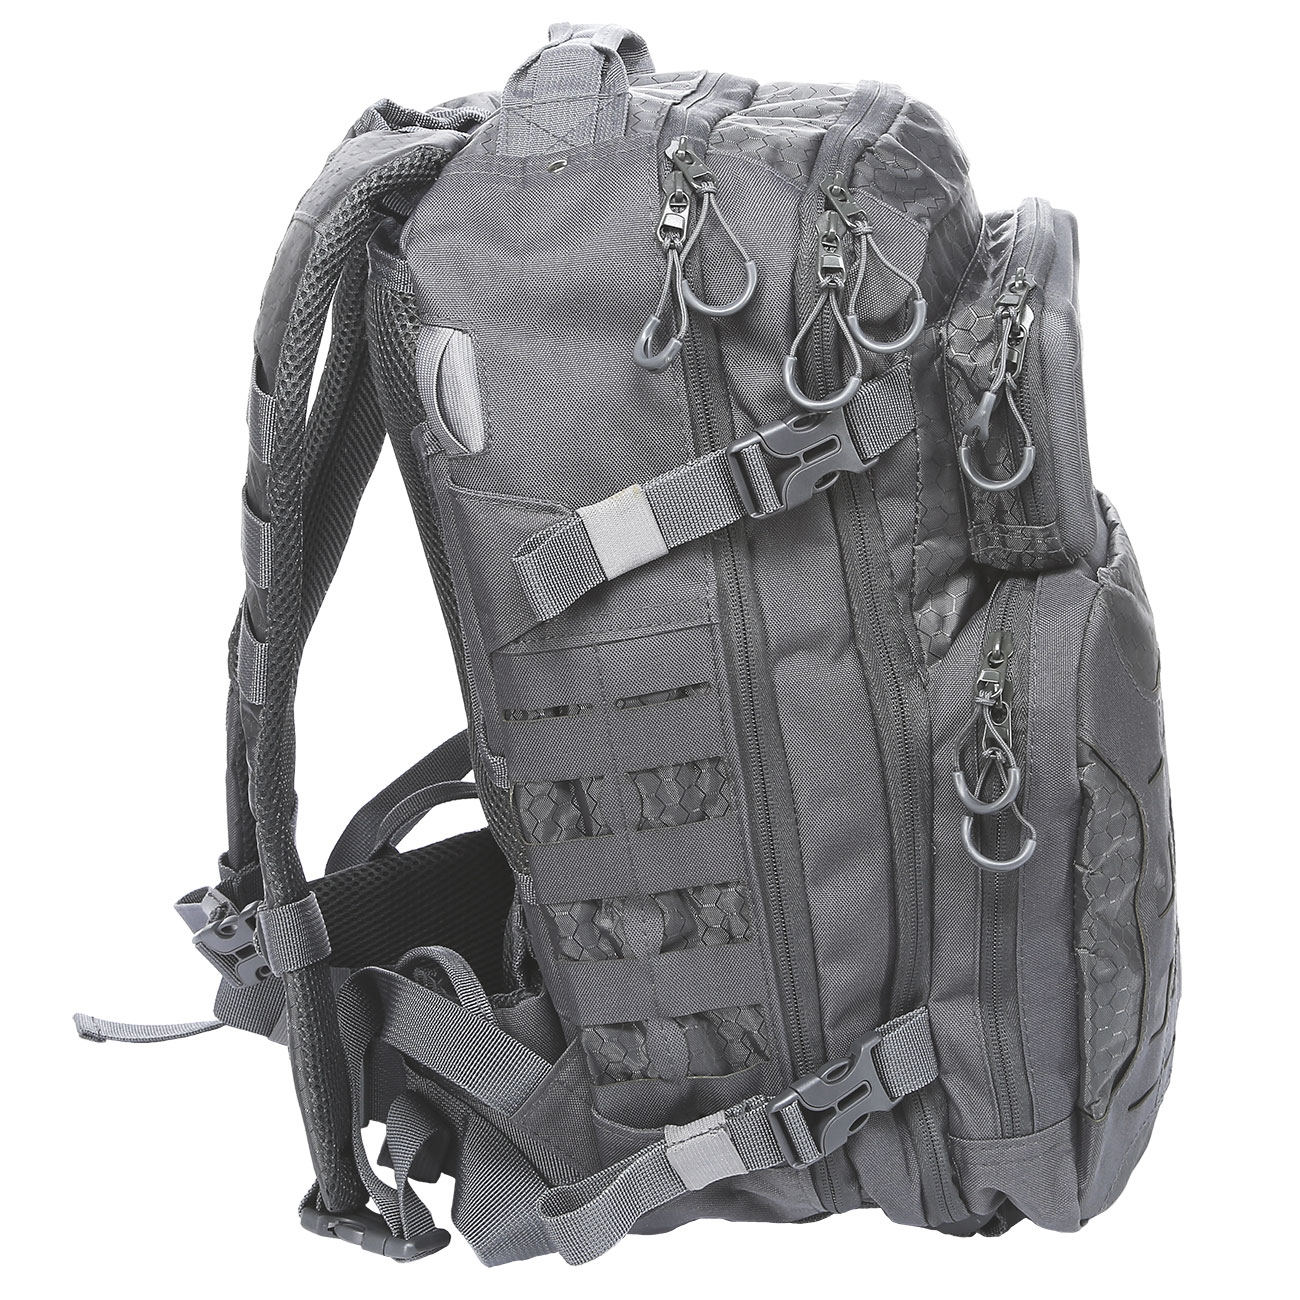 MFH Rucksack Operation I 30 Liter urban grau 1